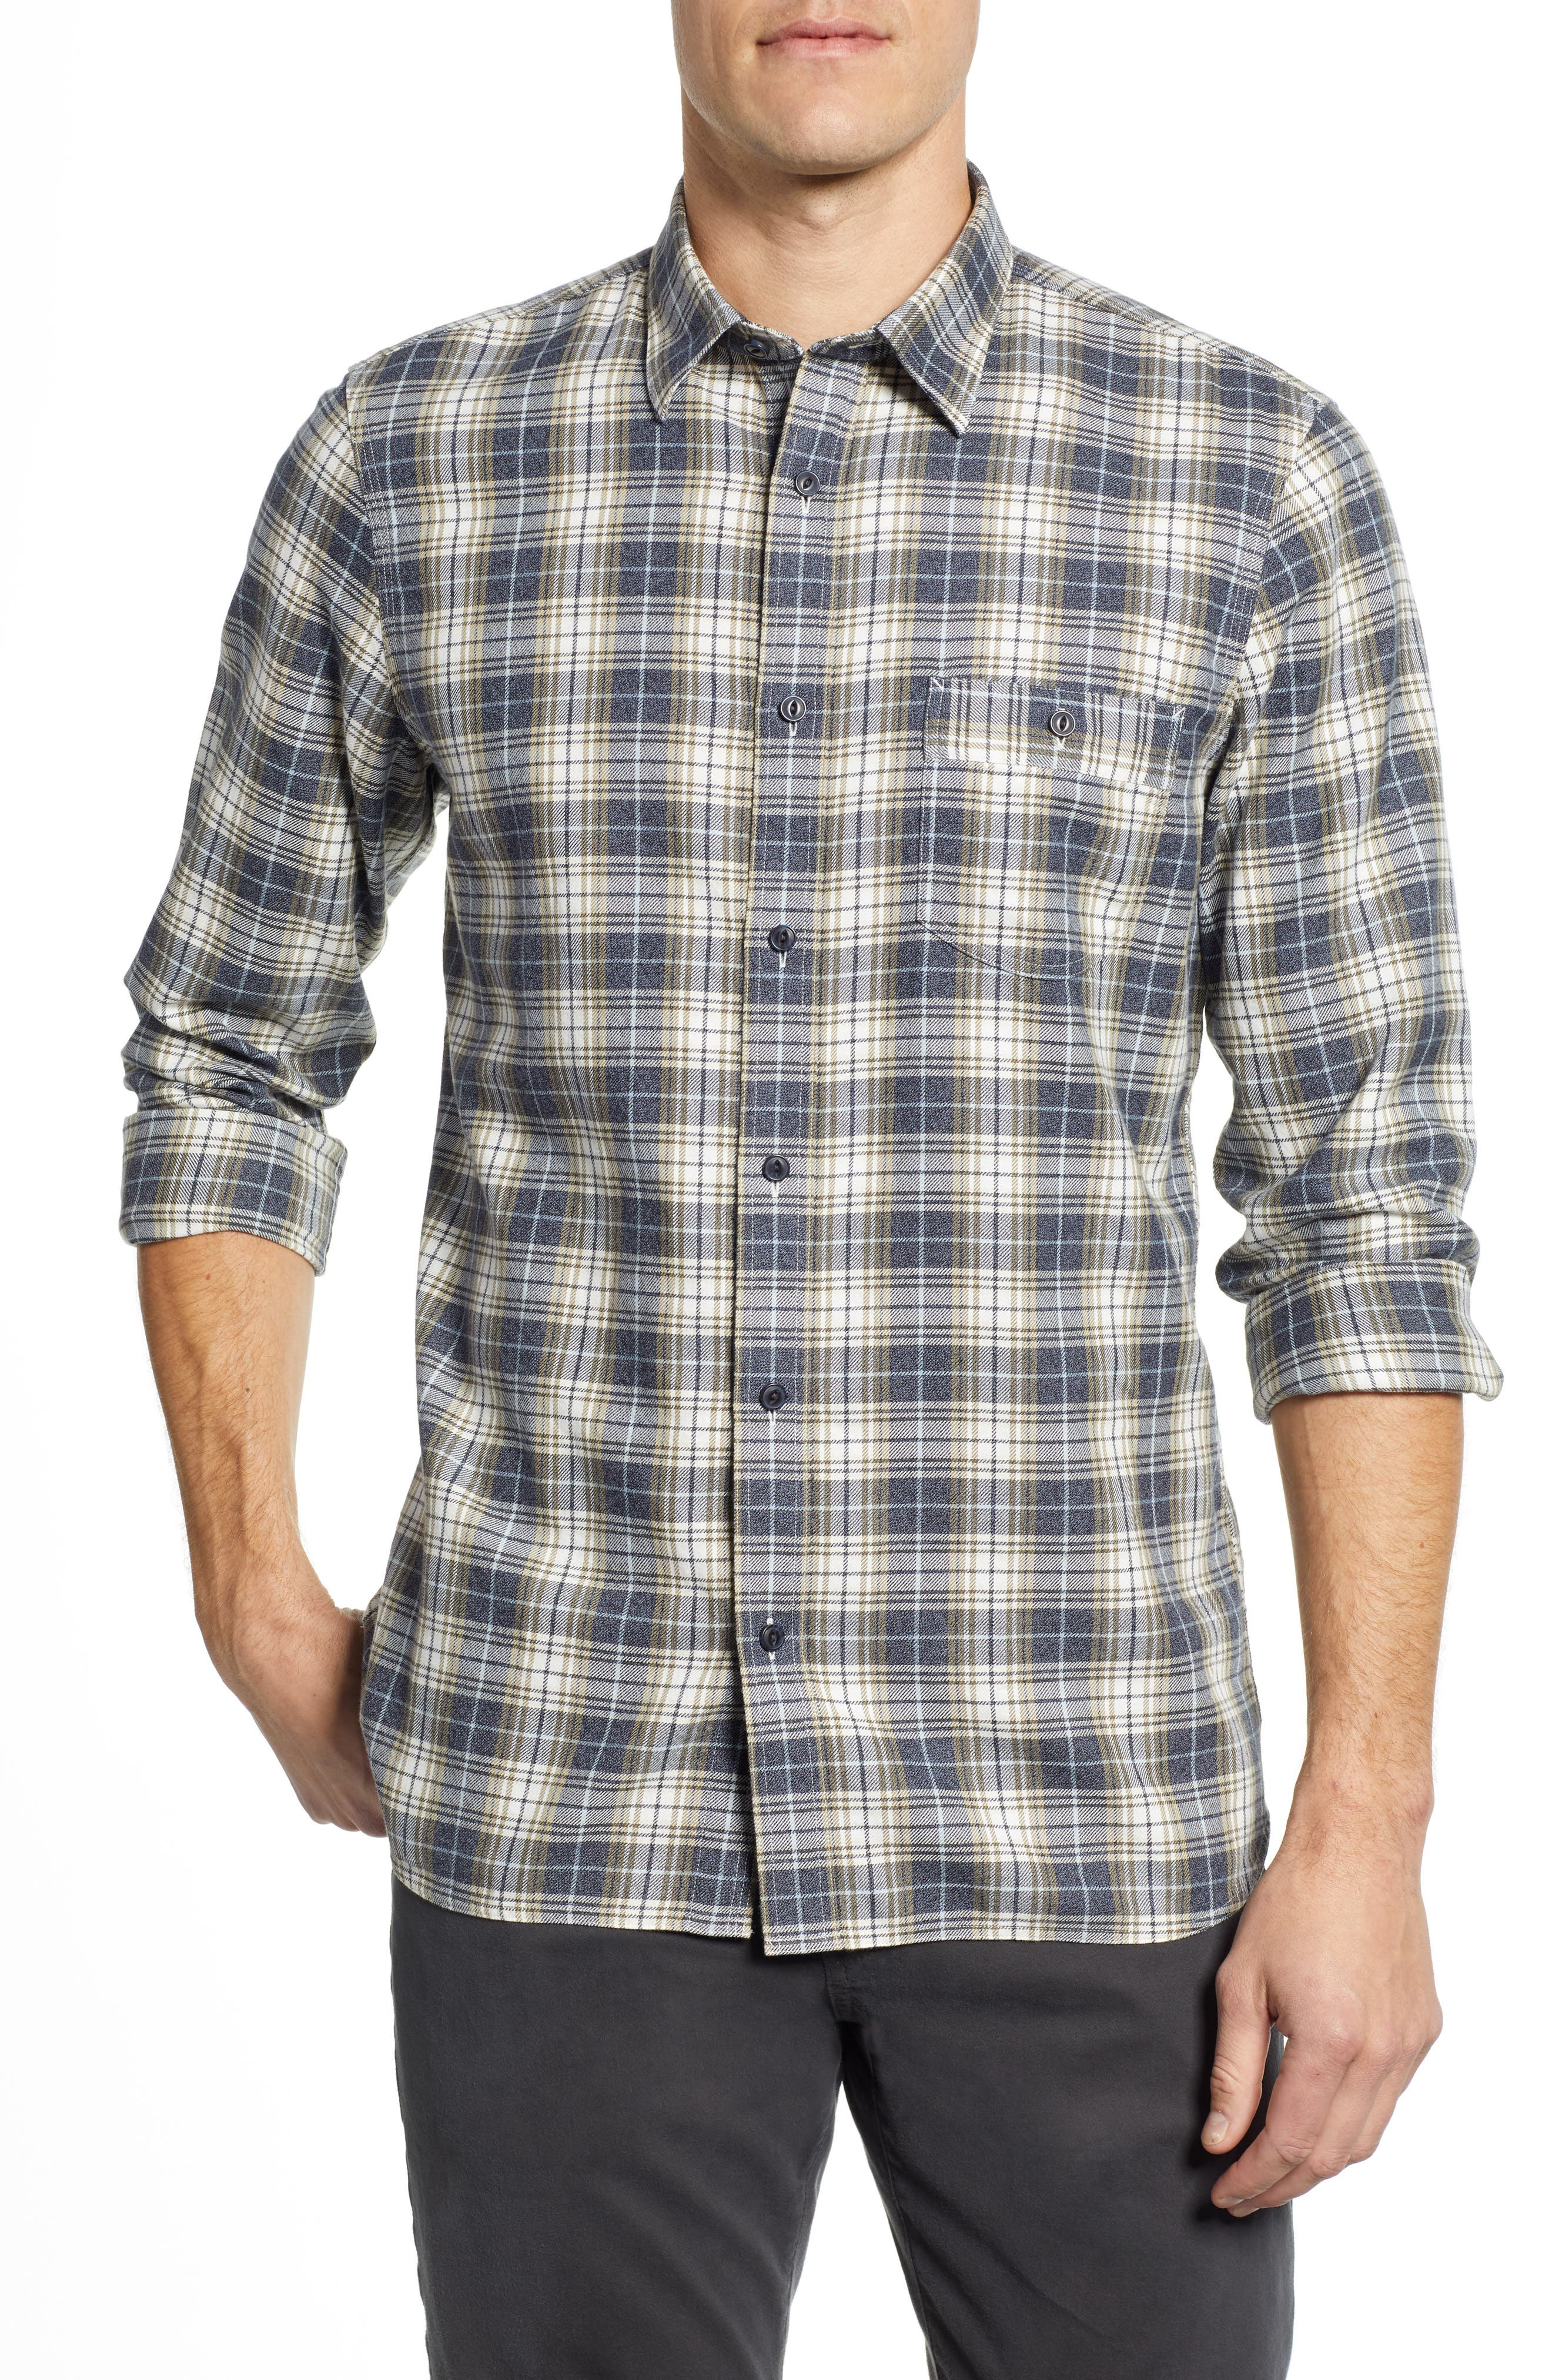 Trucker Regular Fit Plaid Flannel Shirt,                         Main,                         color, IVORY EGRET TWILL PLAID